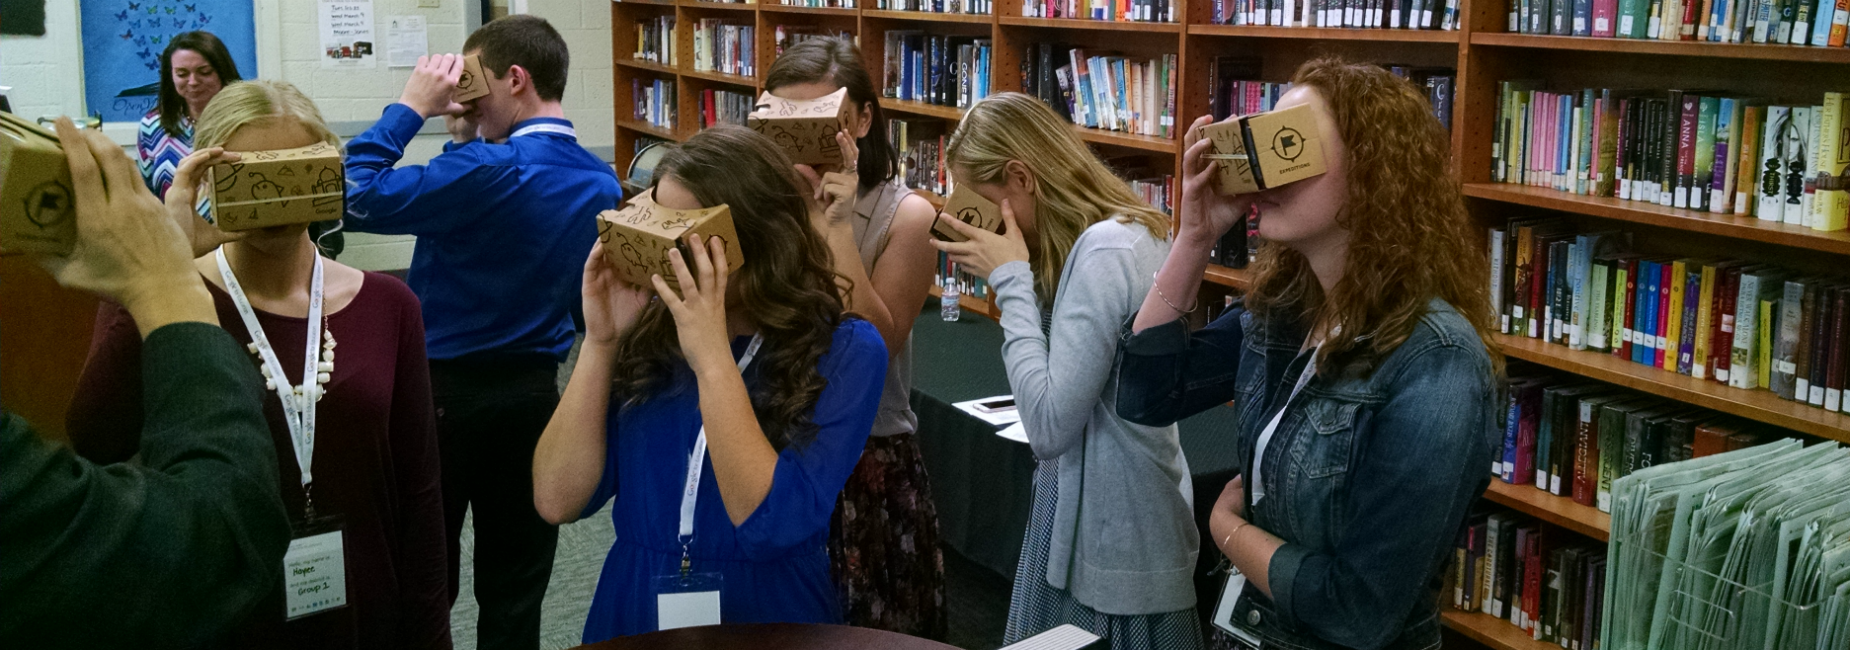 Northwood High School students using Google Cardboard to try out virtual reality field trip.